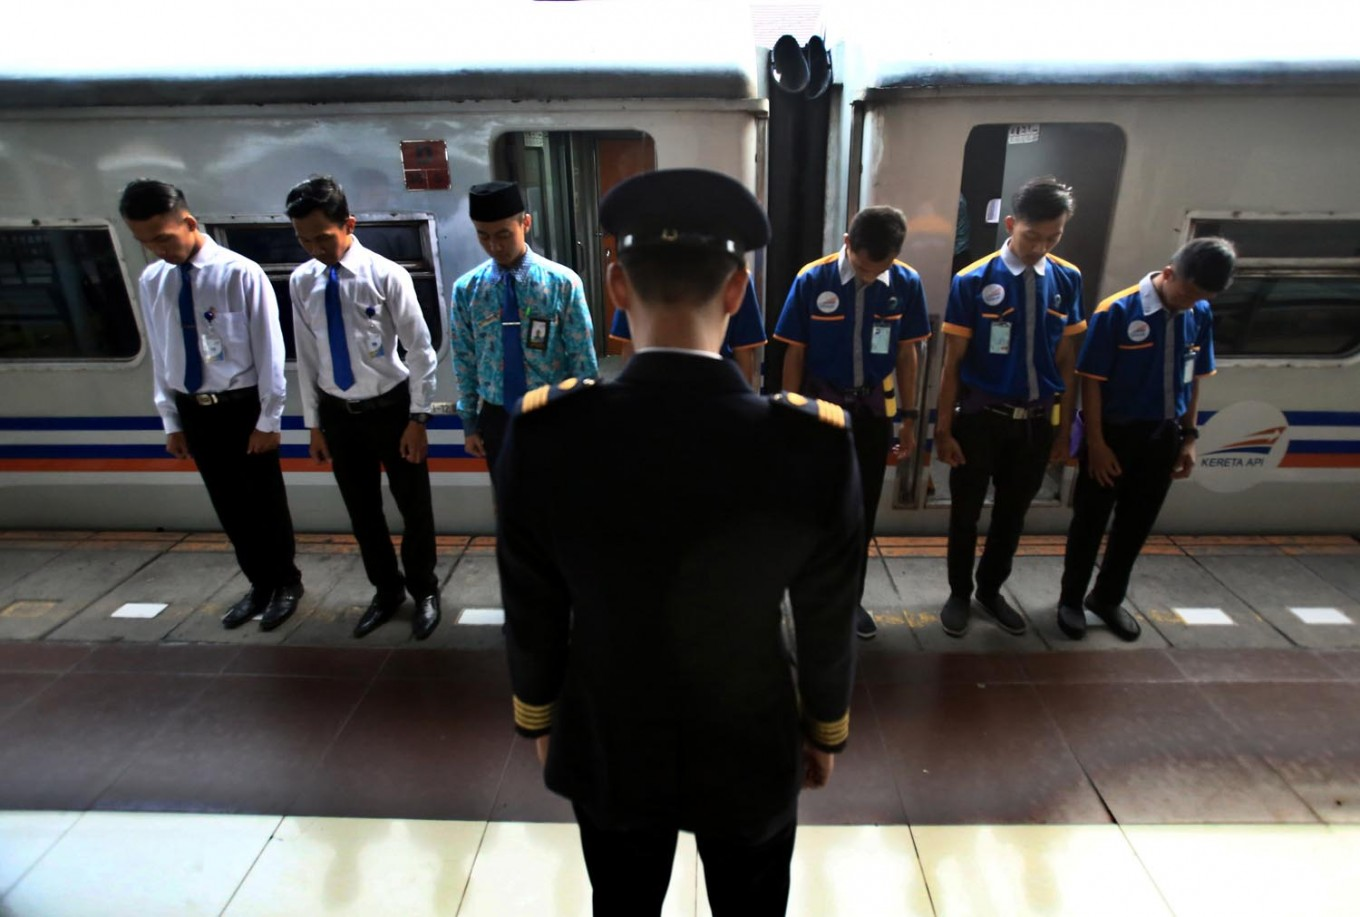 Bless us: A train conductor leads a prayer with his staff before they leave from Pasar Senen Station in Jakarta to Malang in East Java.JP/Dhoni Setiawan